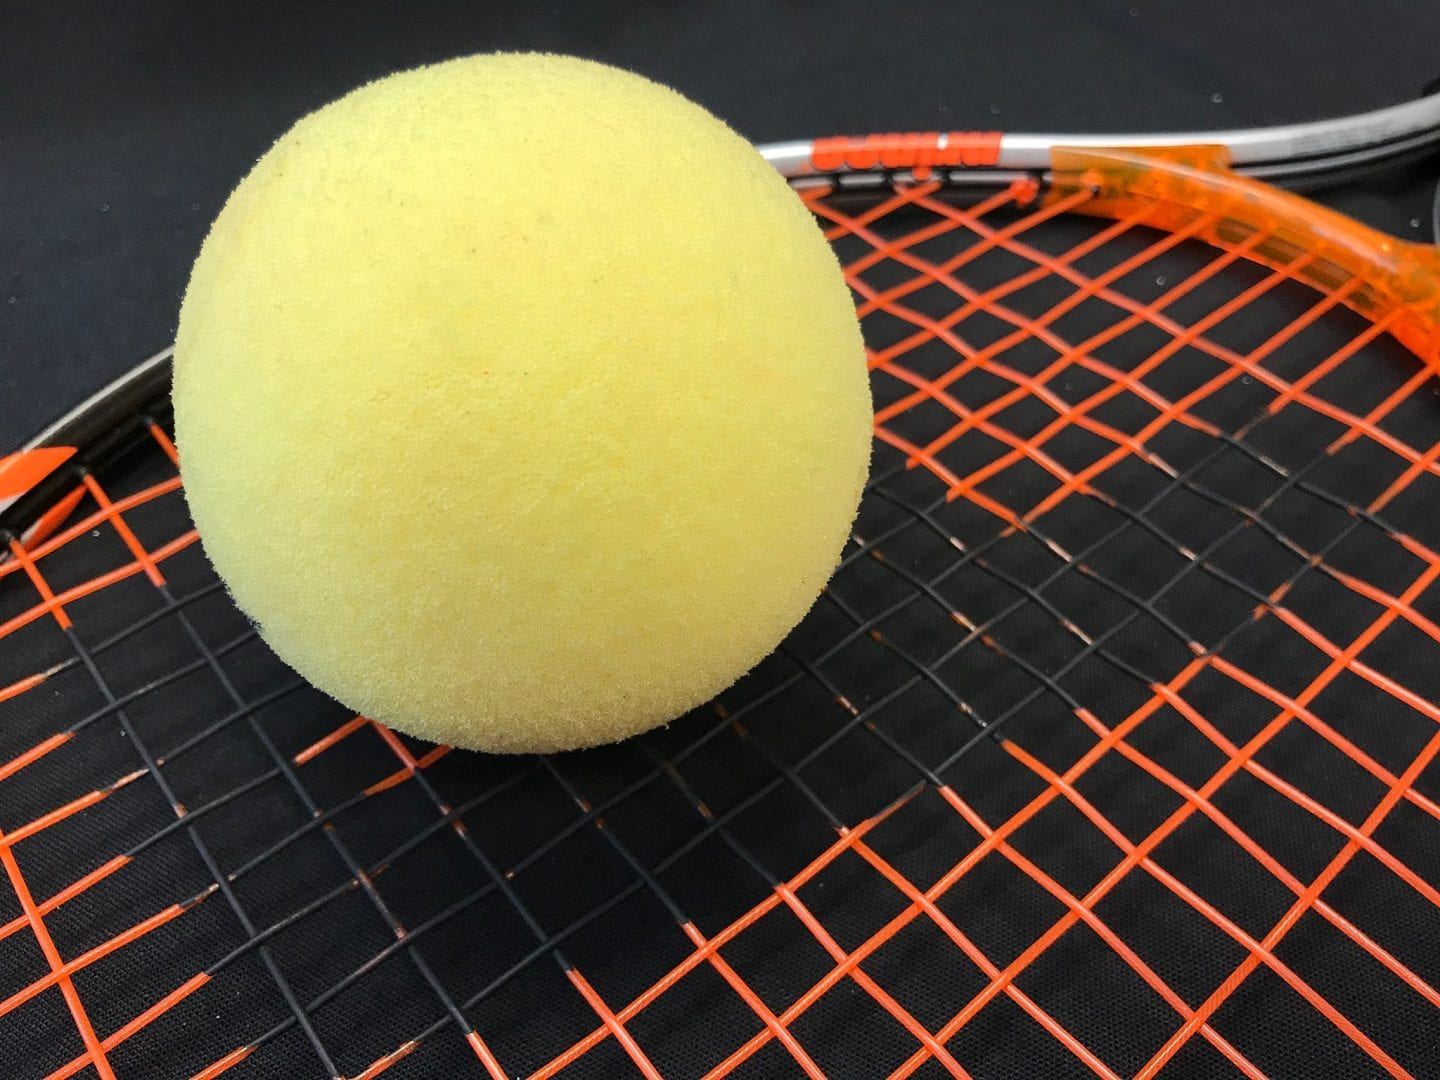 an aph tennis ball on a racket